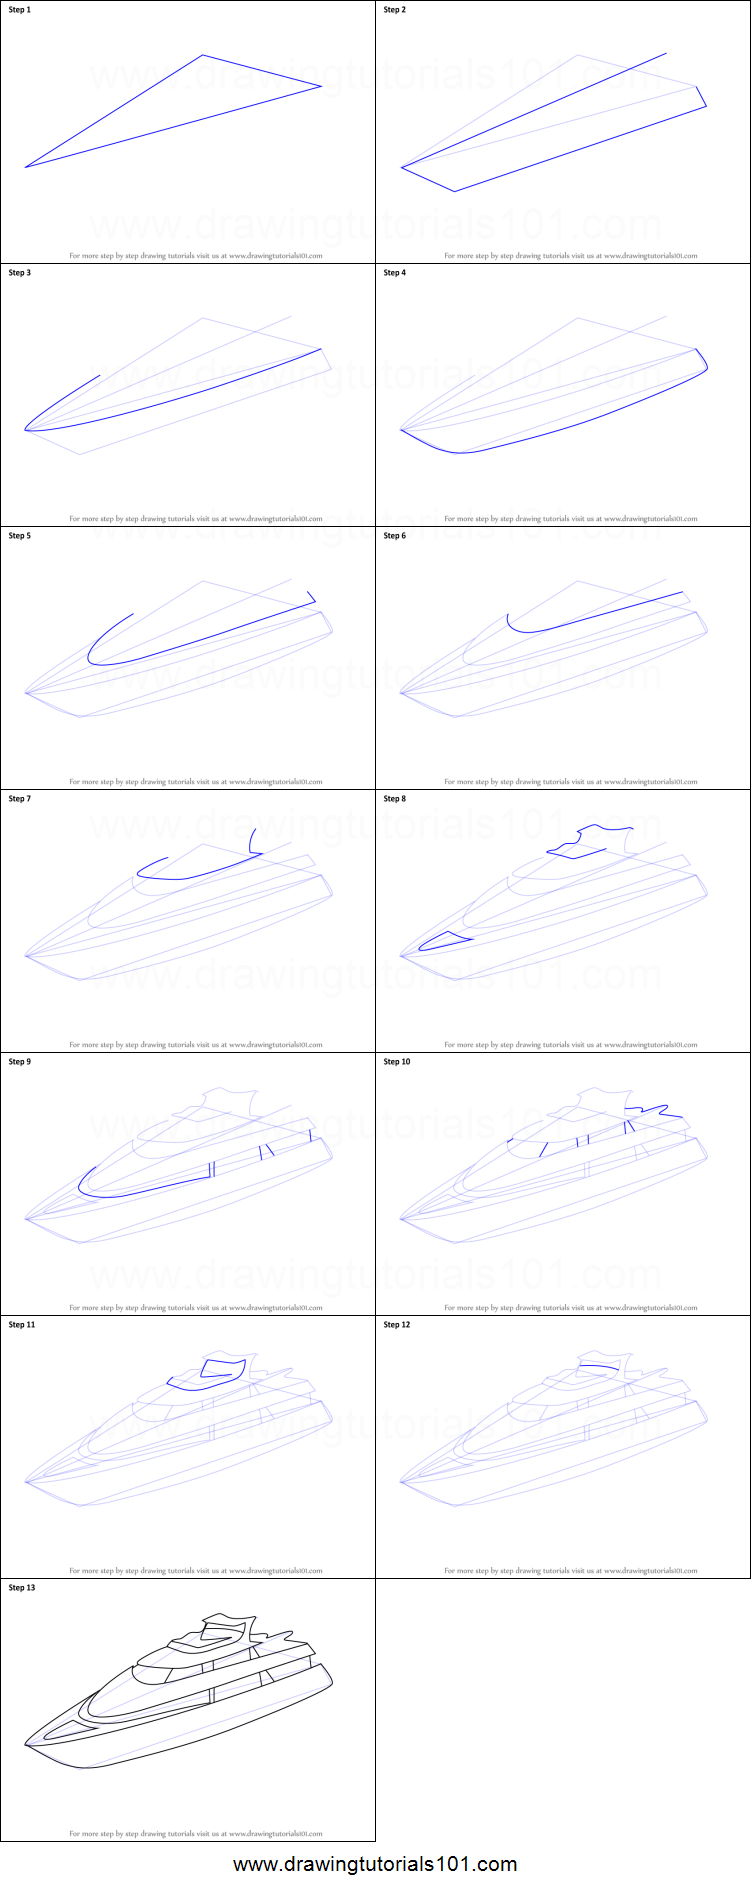 How to Draw a Yacht printable step by step drawing sheet ...